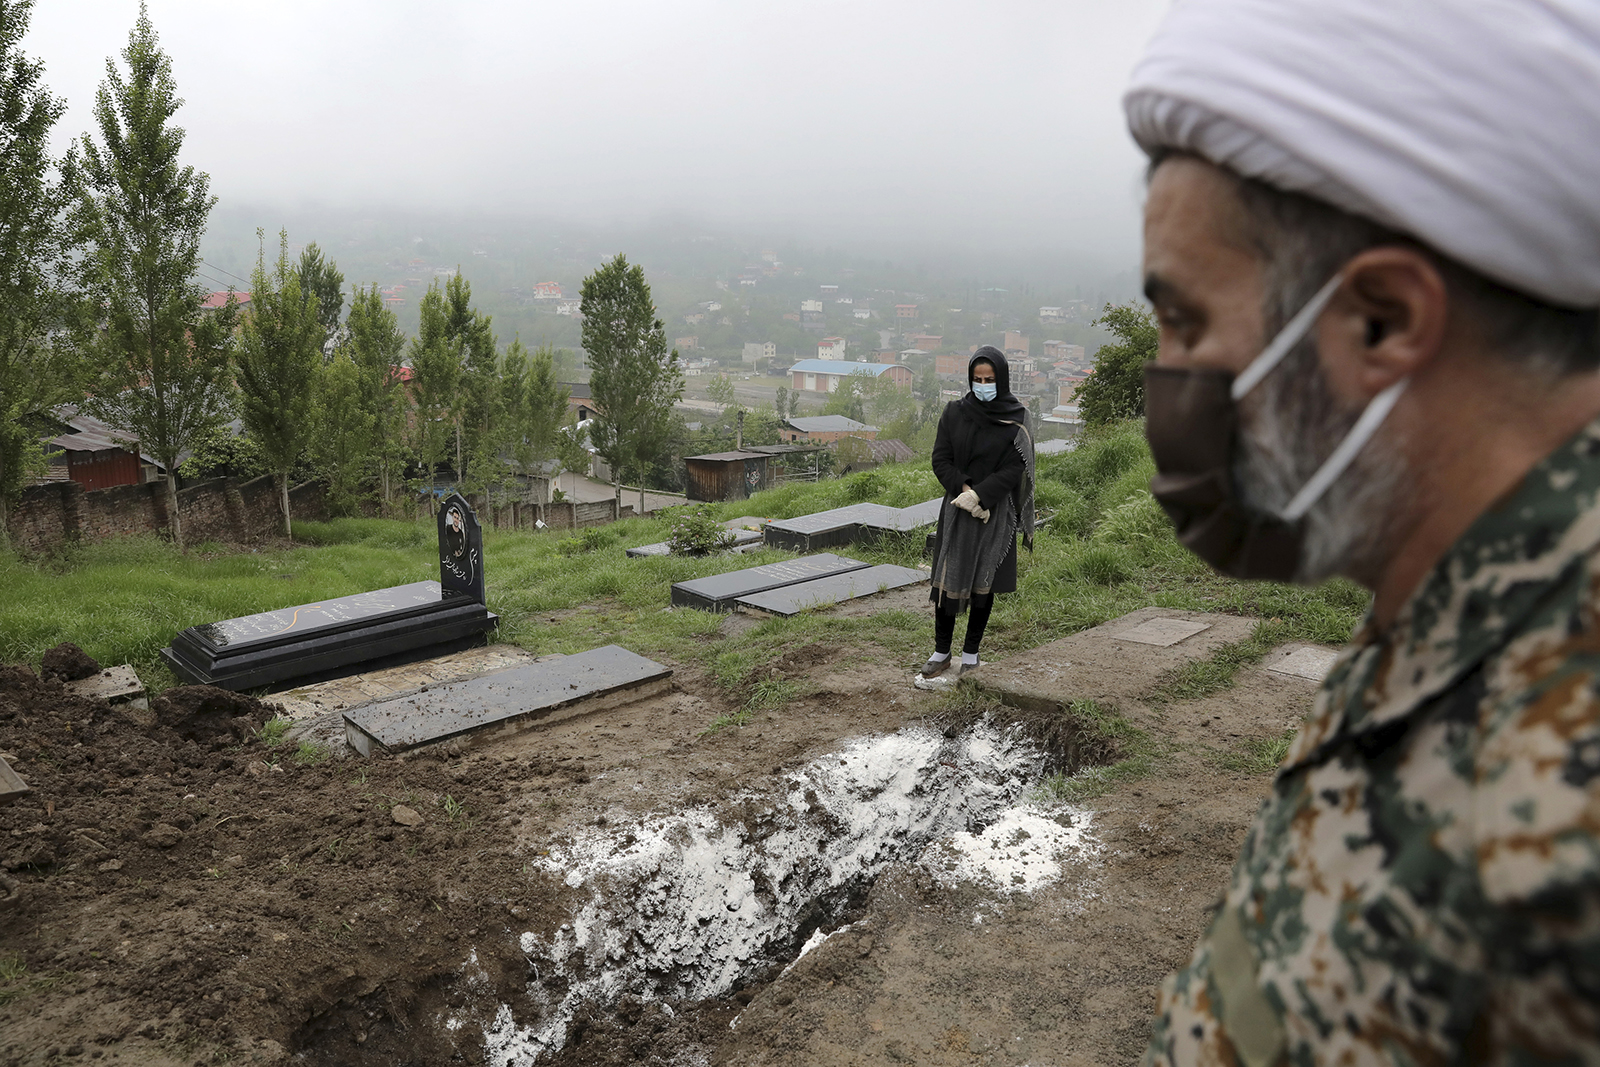 A woman prays at the grave of her mother, who died from Covid-19, at a cemetery in Babol, Iran in this April 30 file photo.